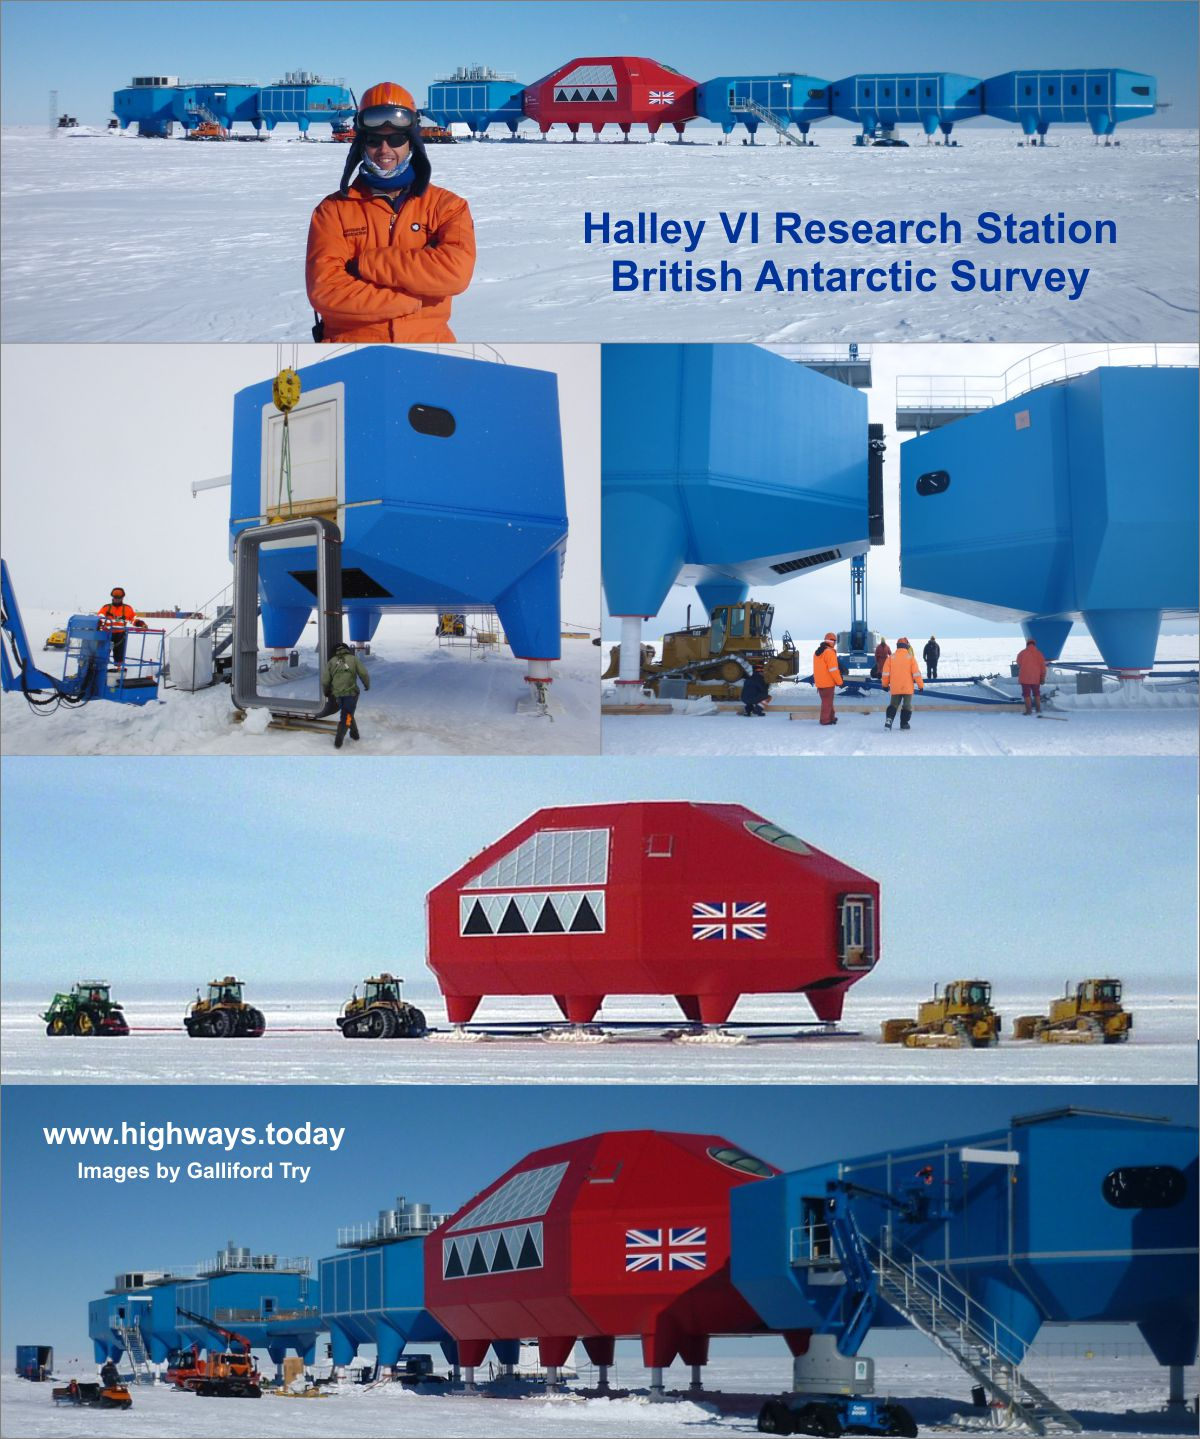 Antarctic Research Station Halley Vi Creates Its Own